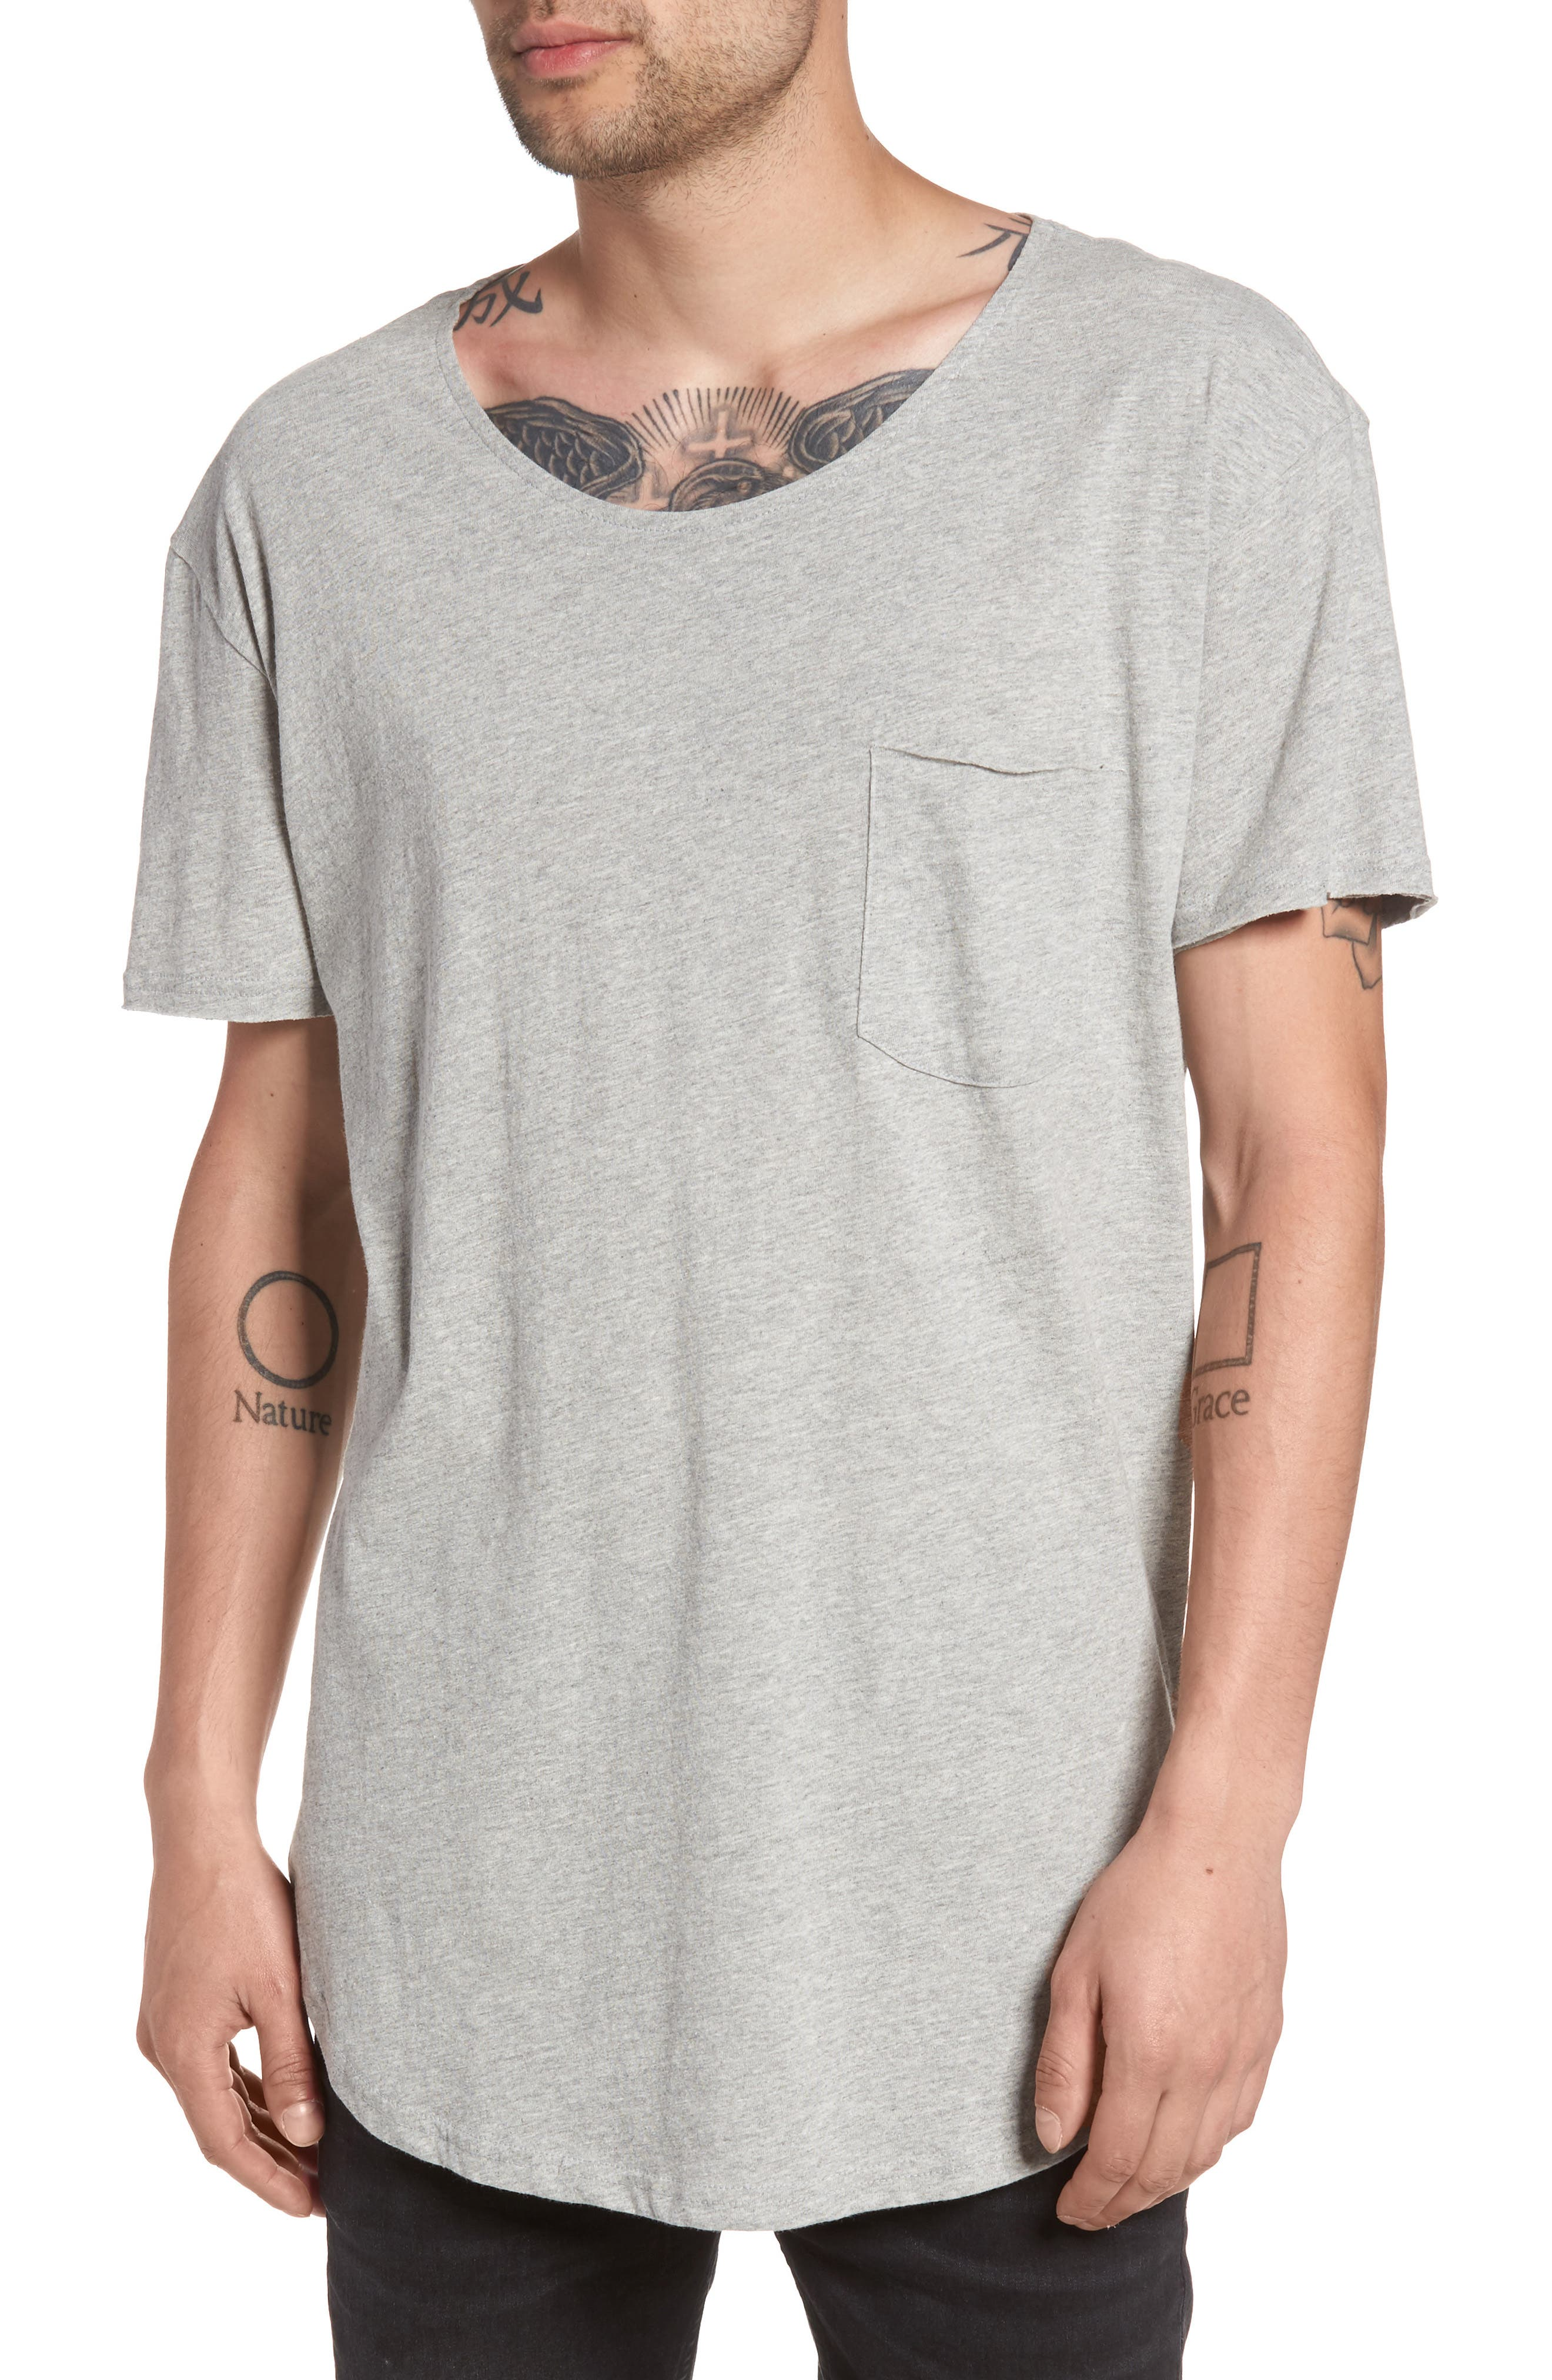 The Rail Longline Scoop Neck T-Shirt